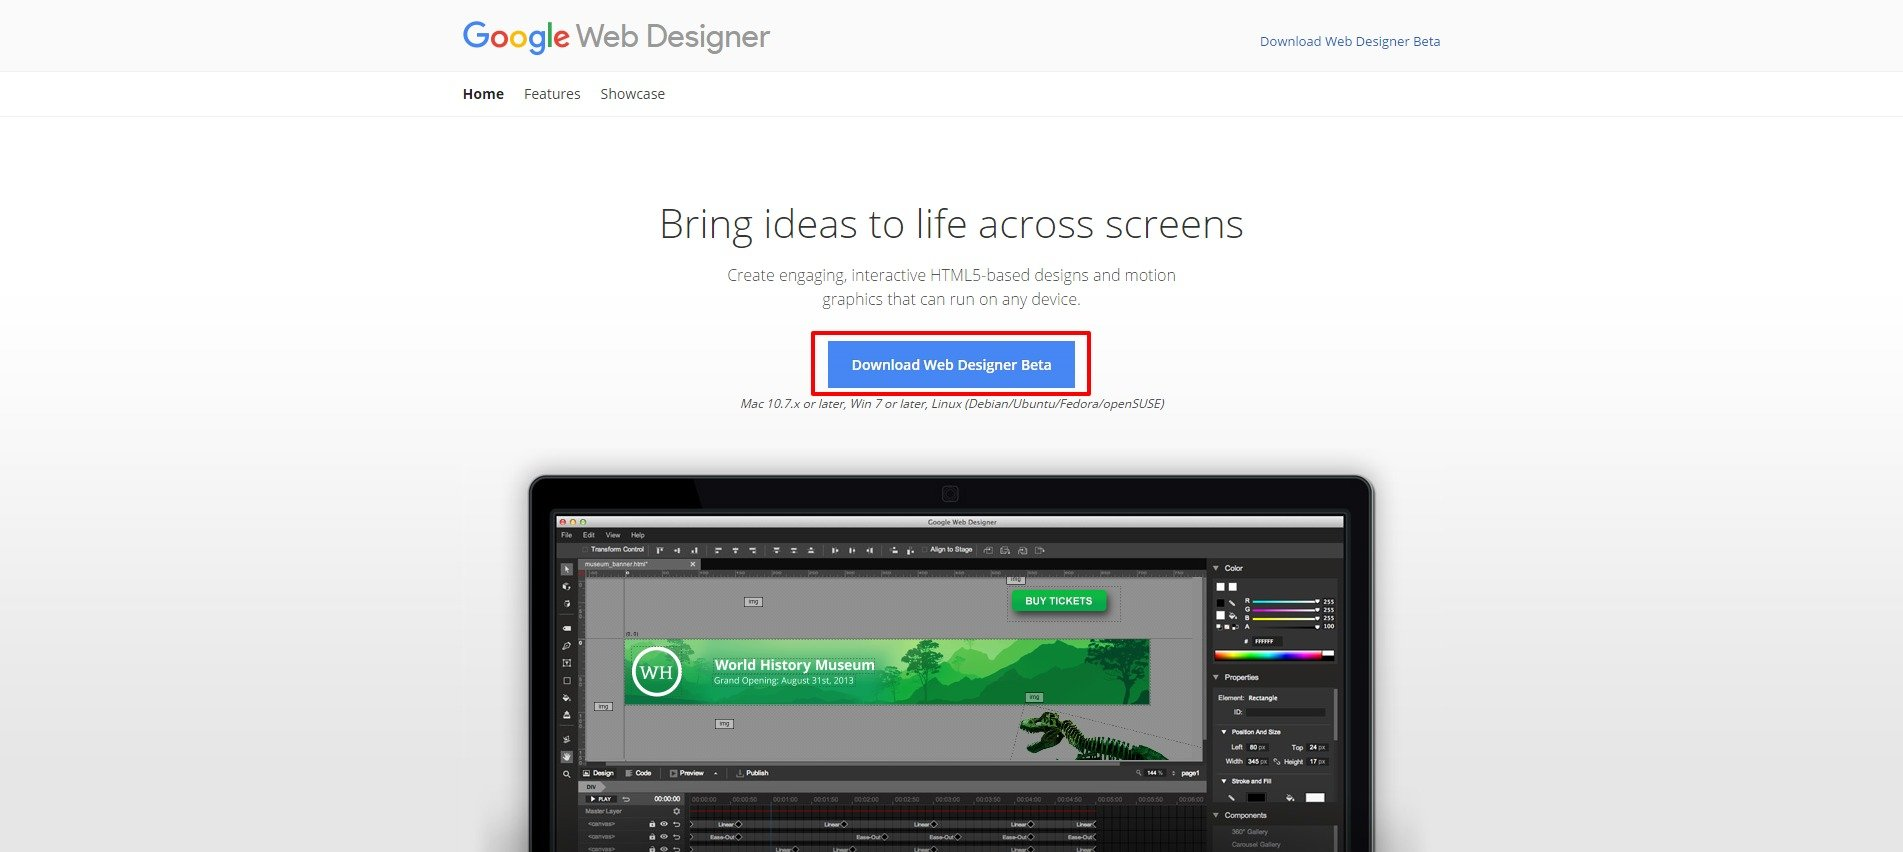 Download Web Designer Beta